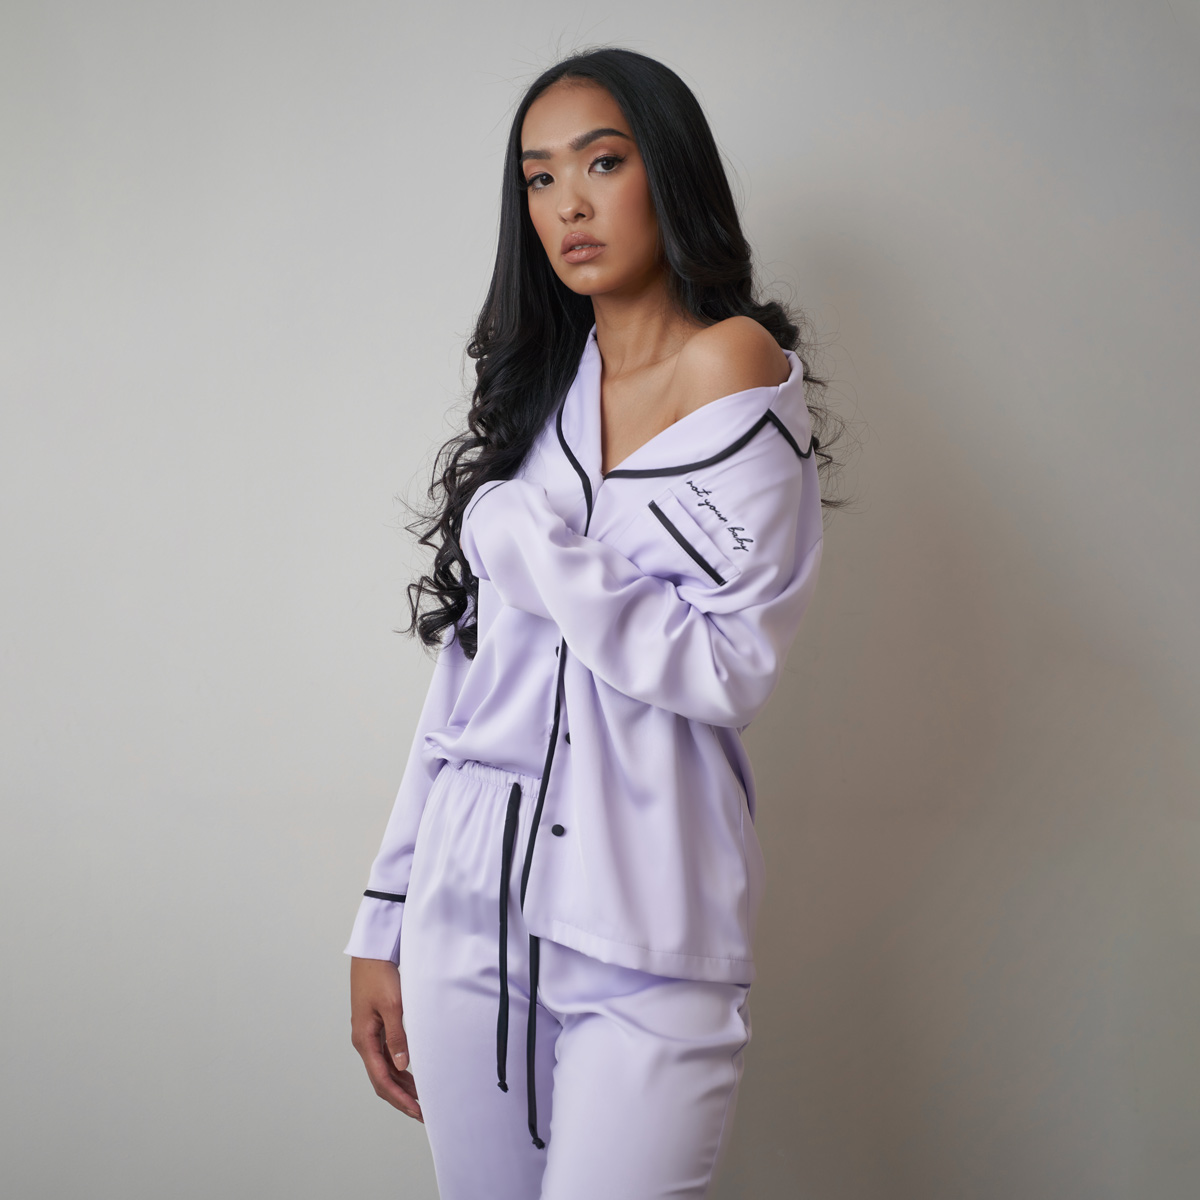 shop-personalised-pjs-sleepwear-lilac-winter-south-africa-topdrawer-collection